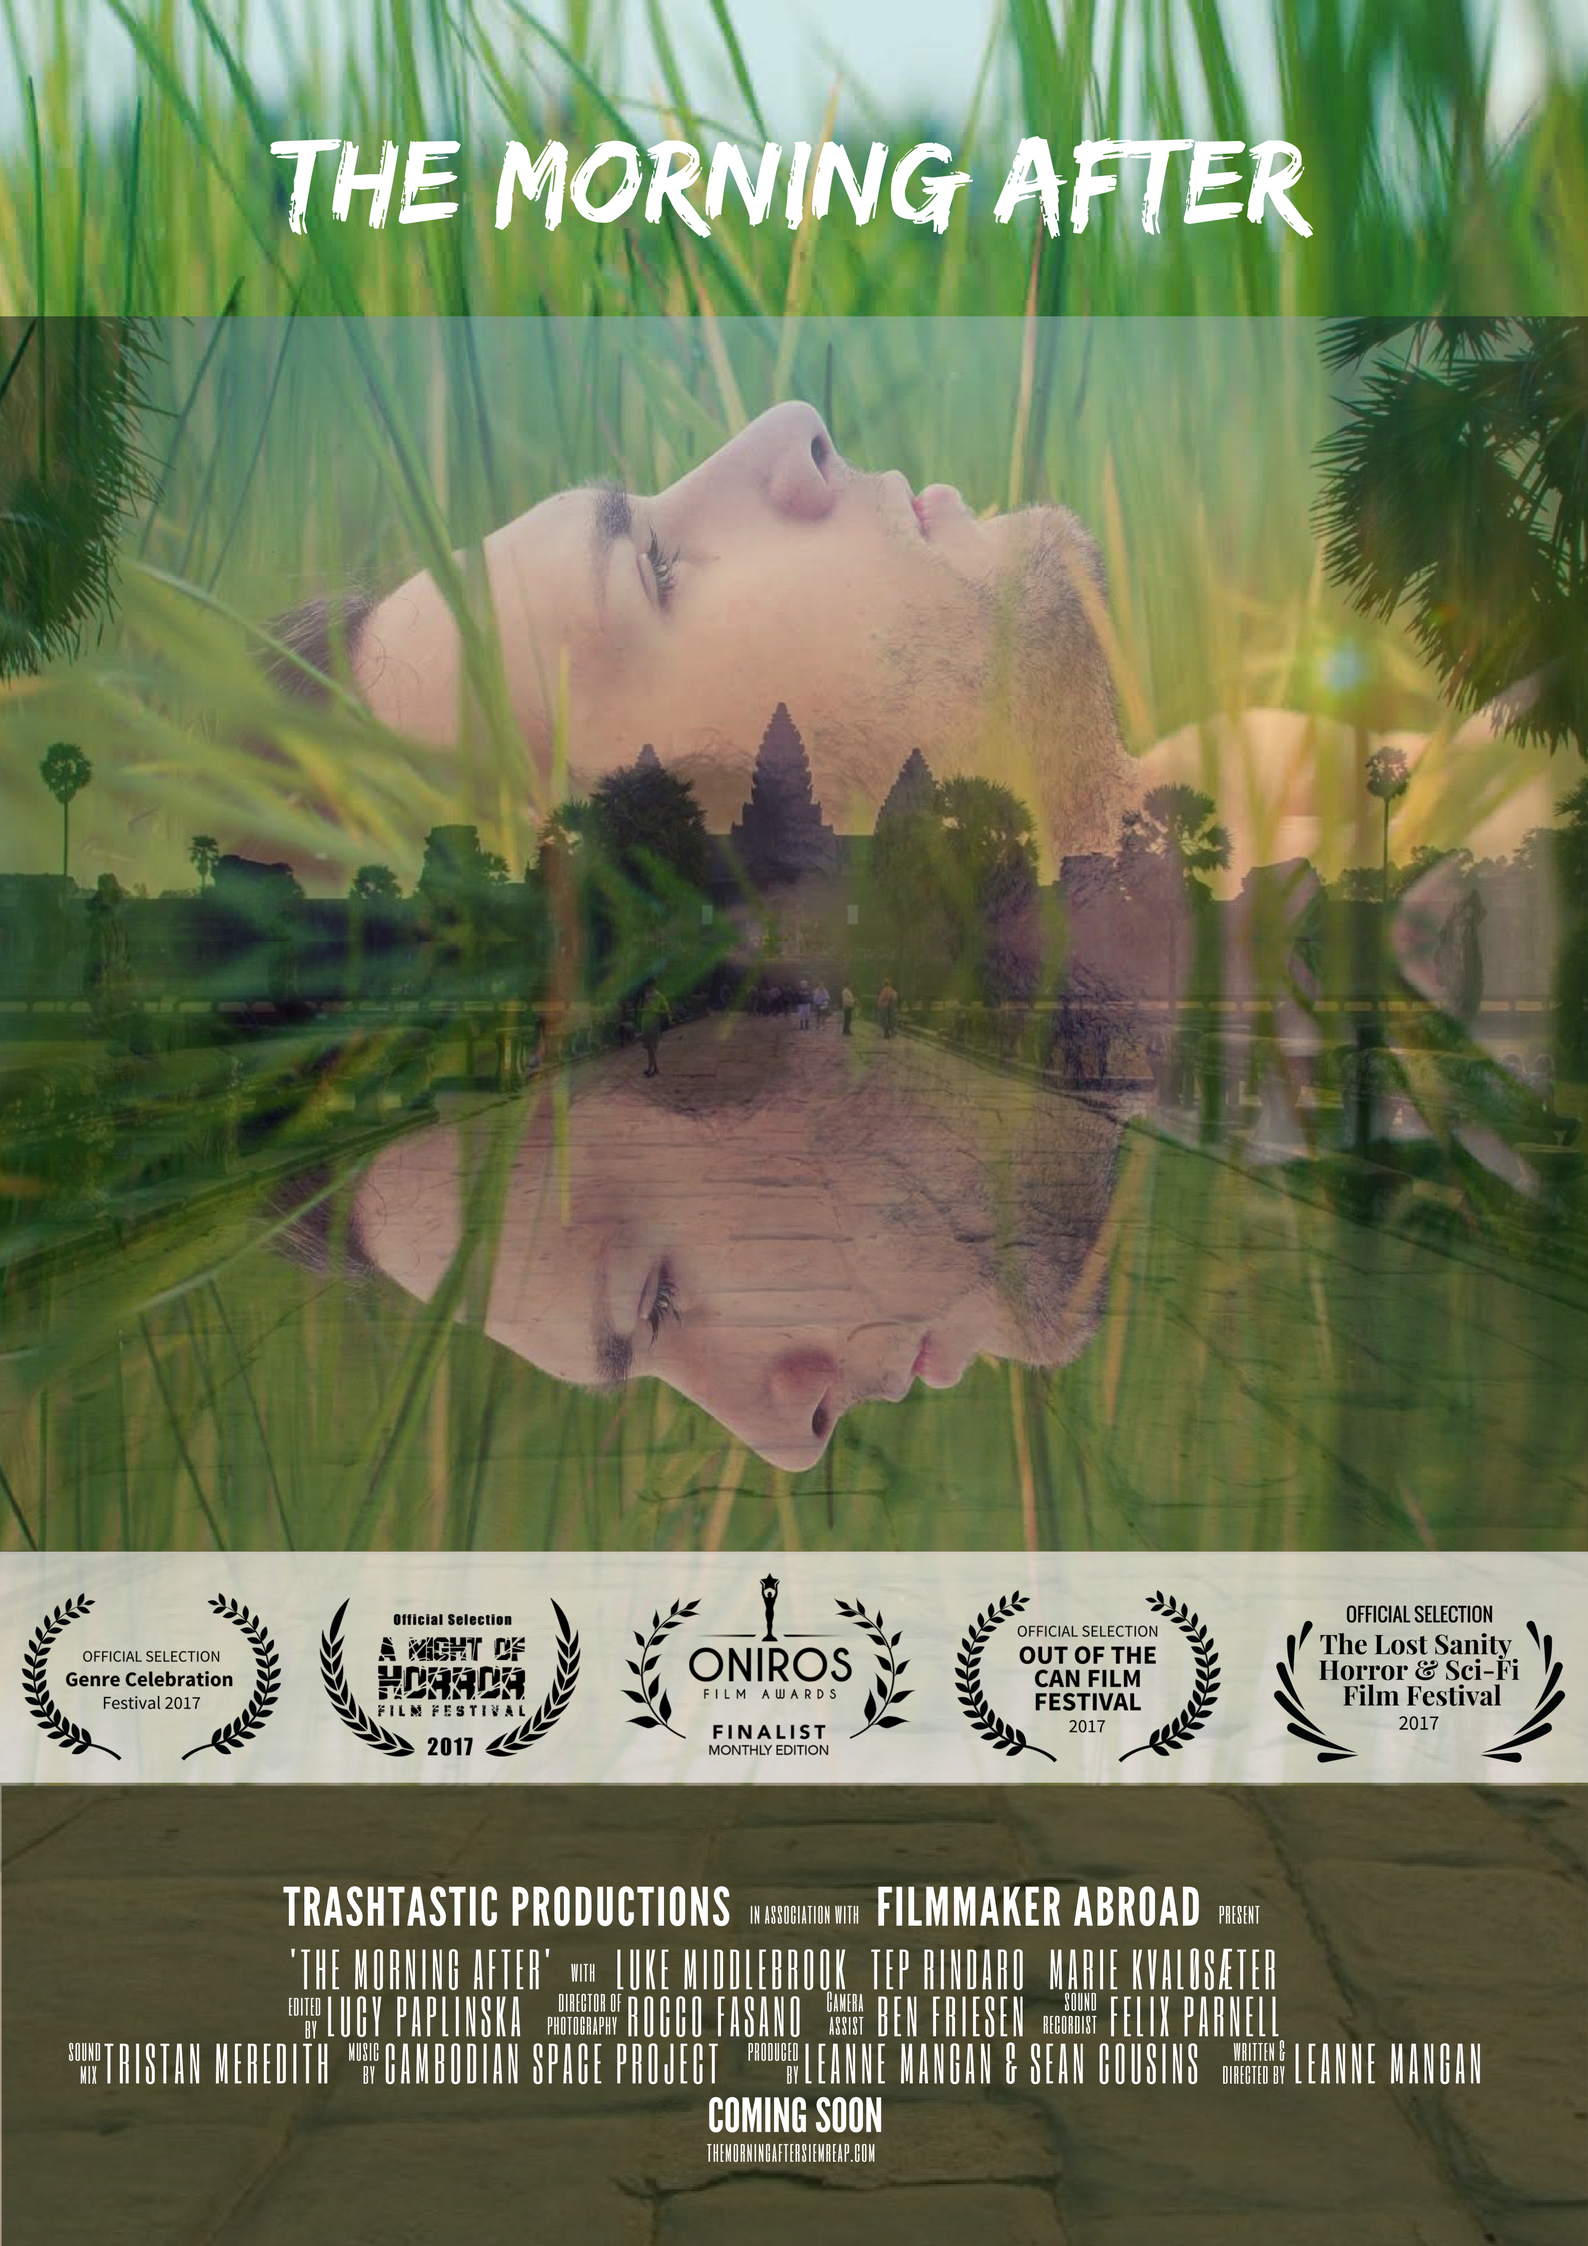 The Morning After short film poster